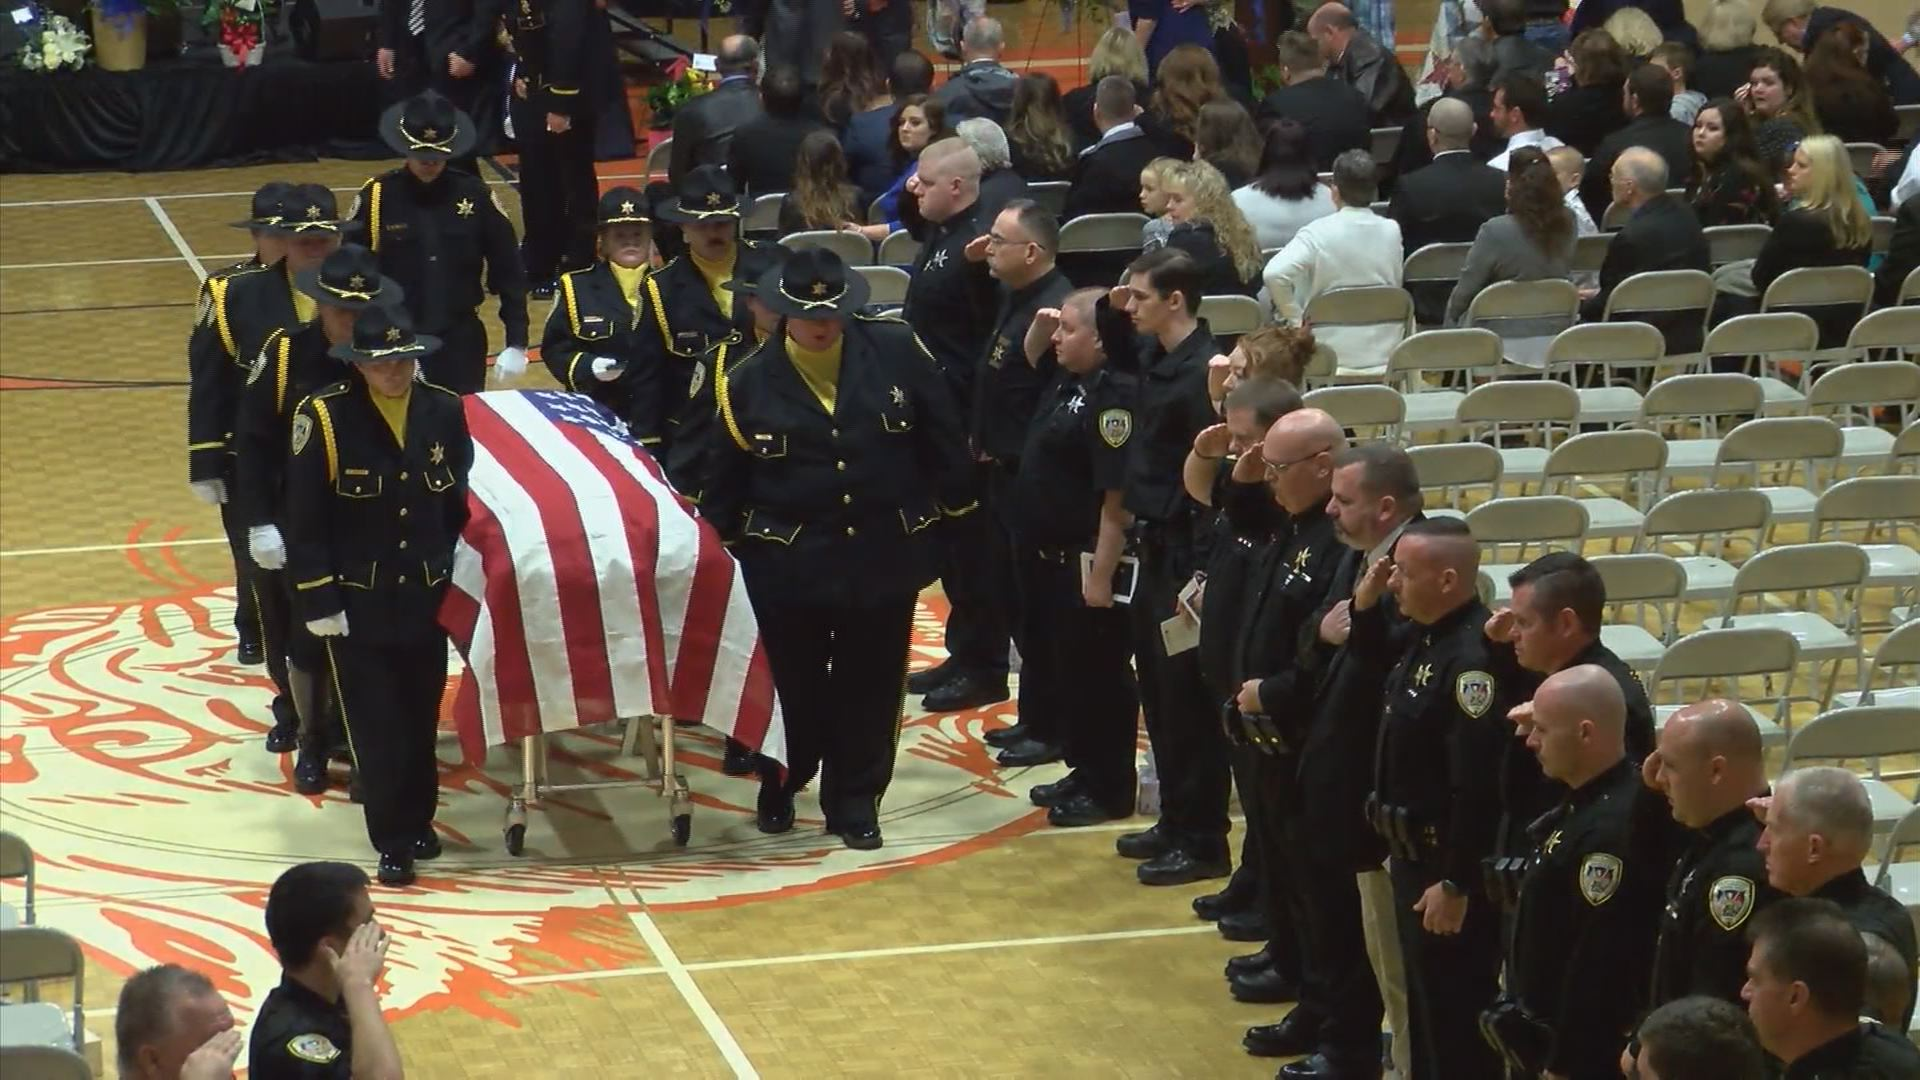 Sgt. Hinkle arrival to today's celebration of life.